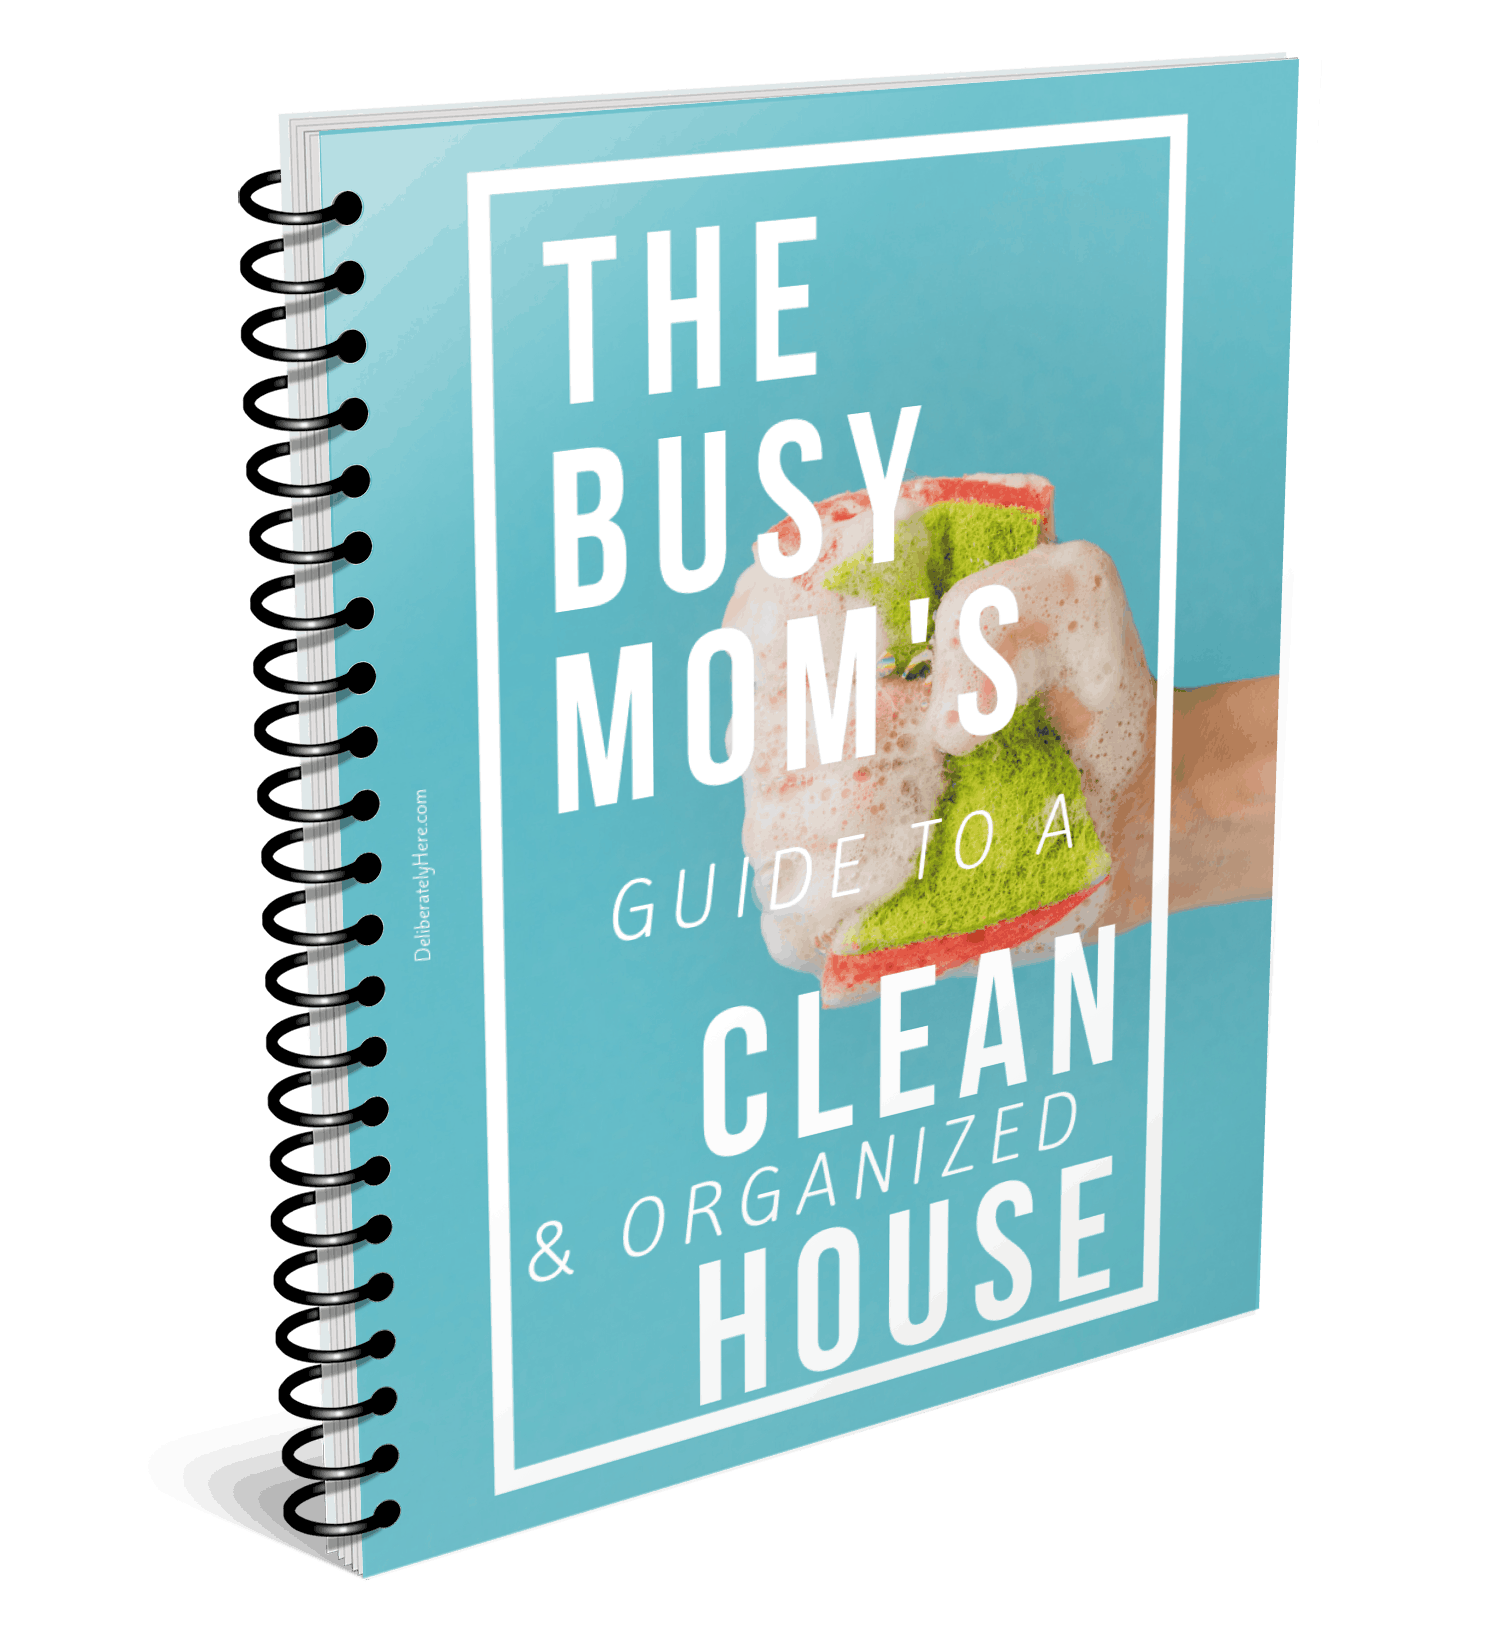 The Busy Mom's Guide to a Clean & Organized House - the eBook